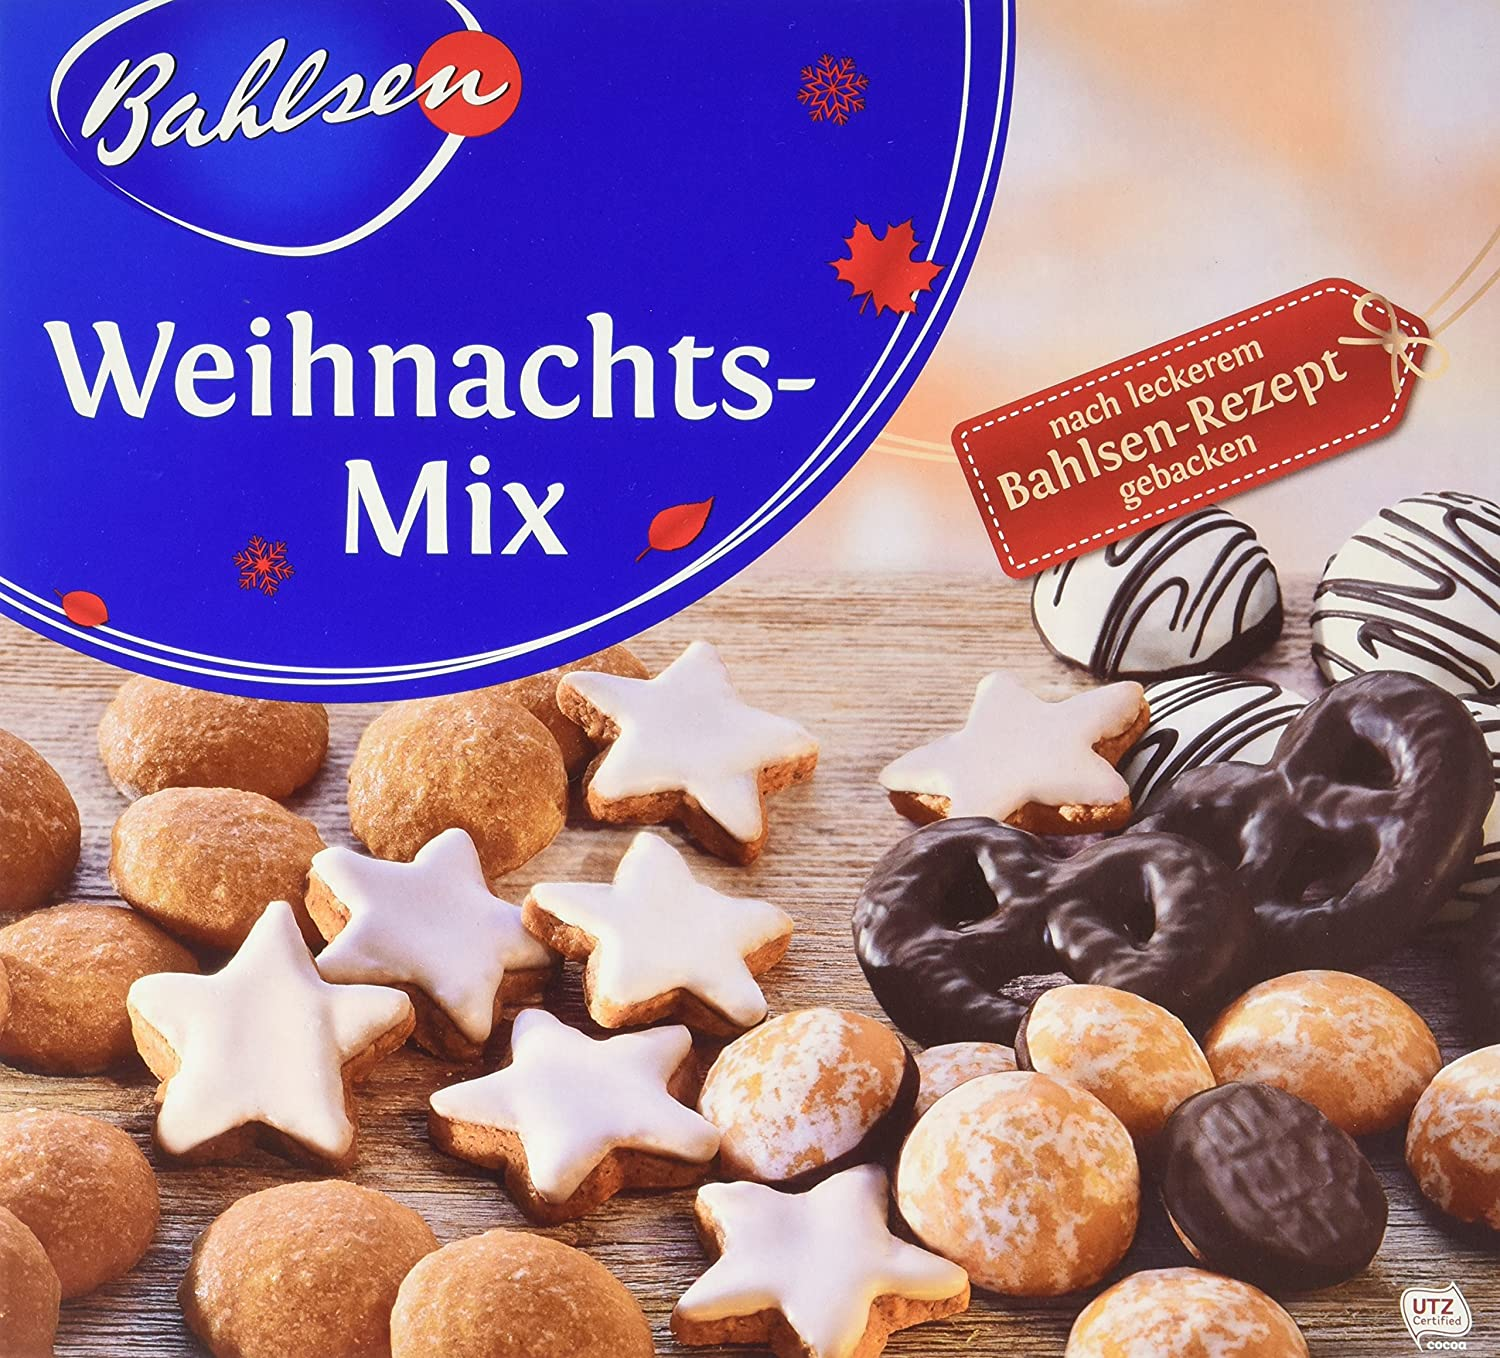 Bahlsen Weihnachts-Mix, 5er Pack (5 x 500 g): Amazon.de ...